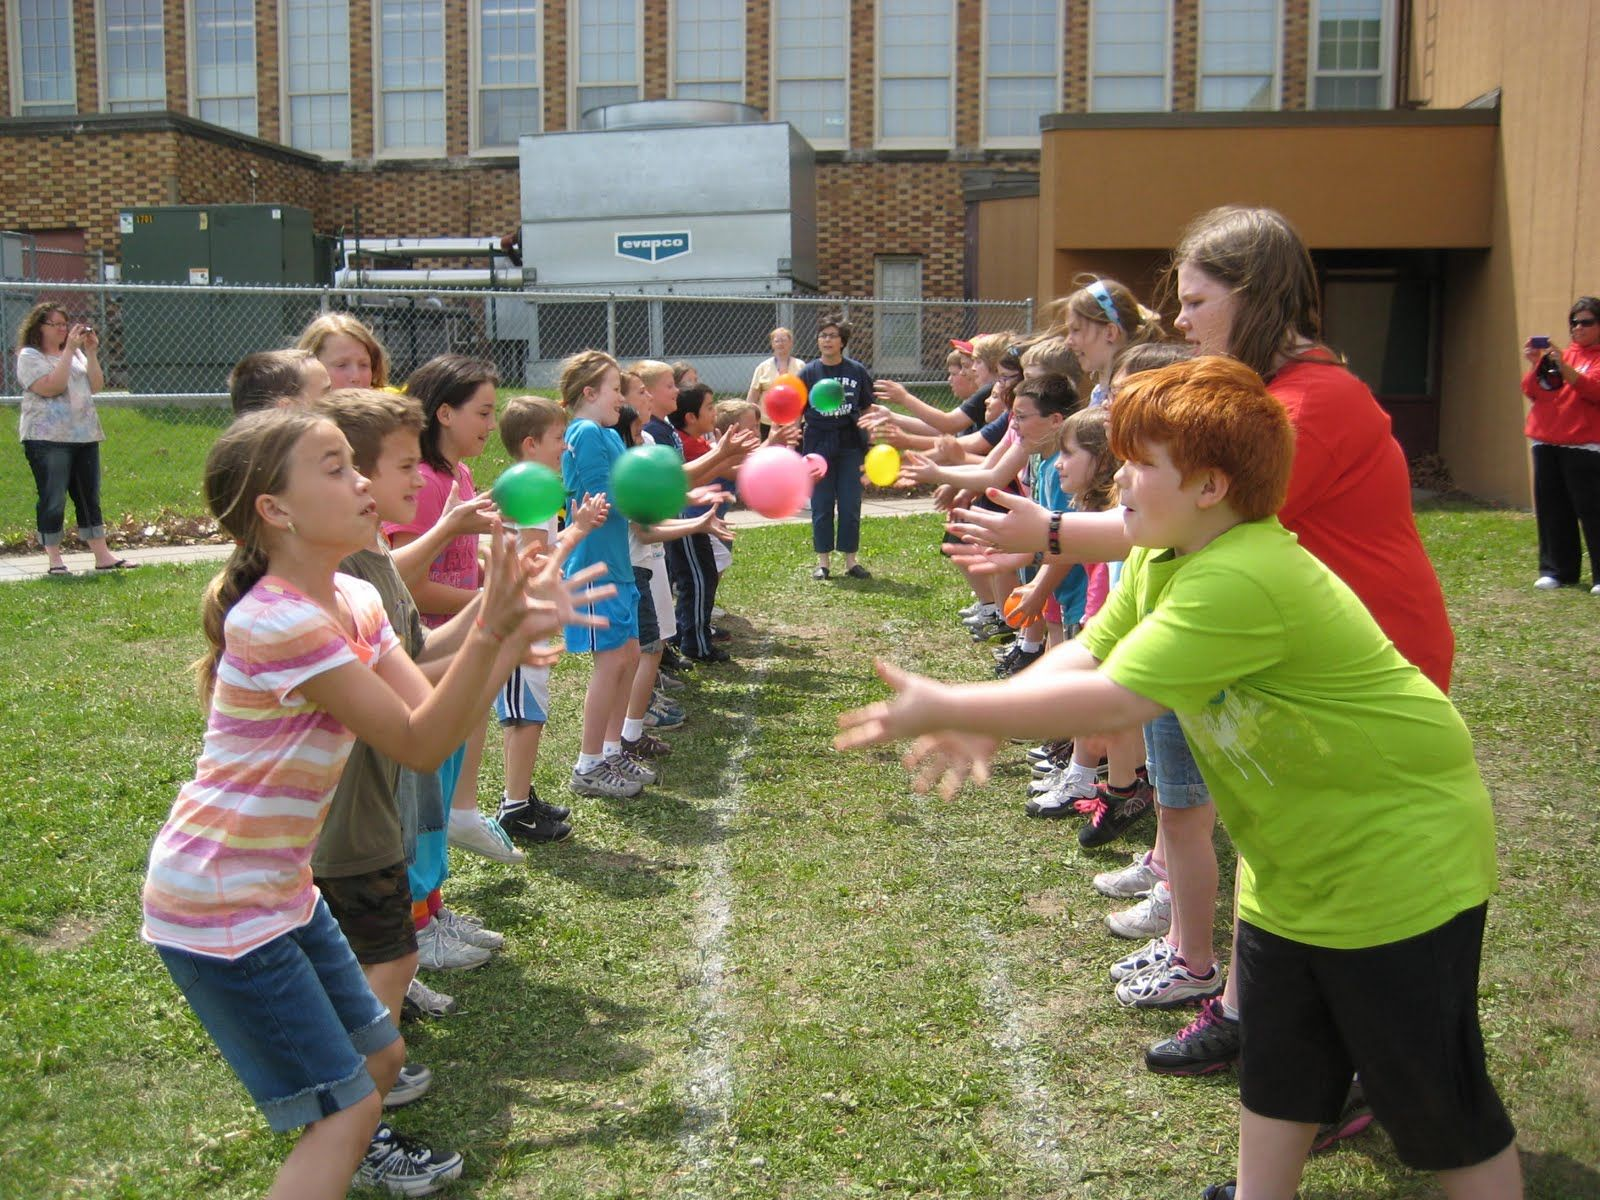 water balloon toss is great fun for two people or a group.